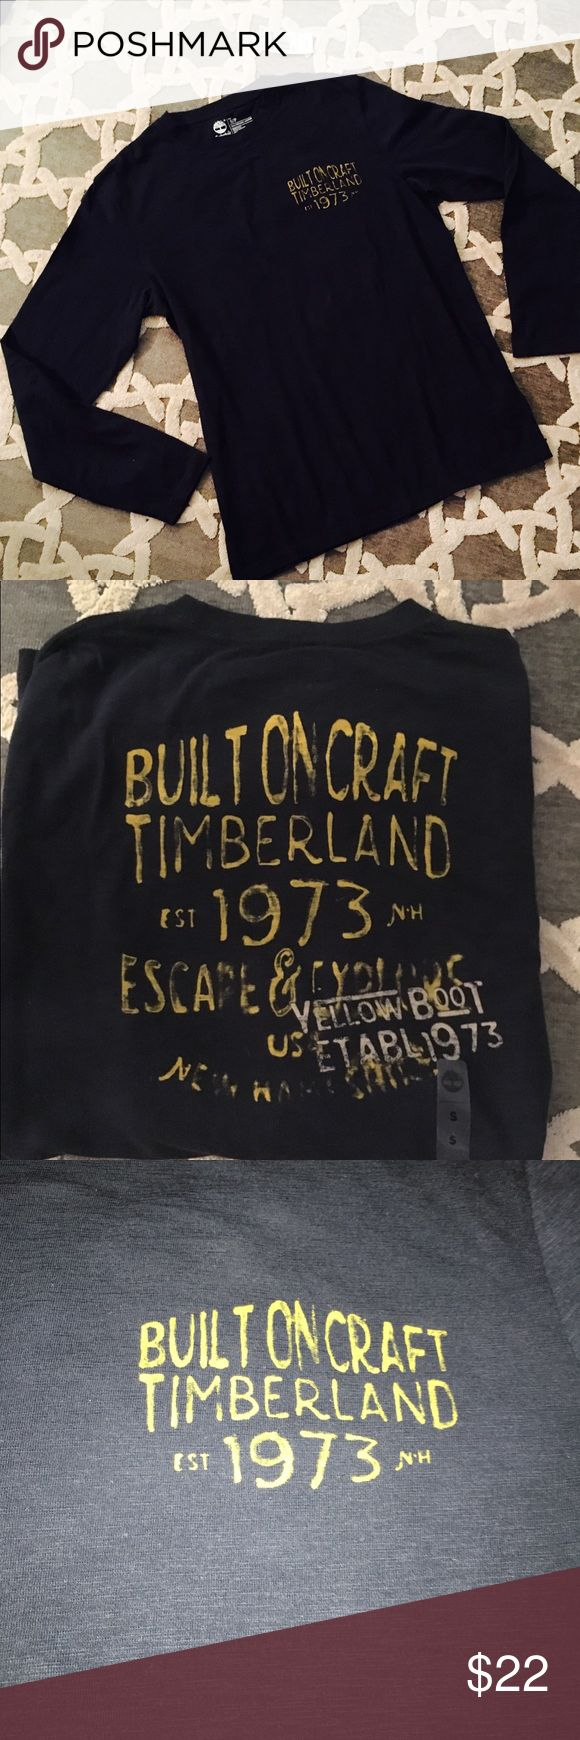 Timberland long sleeve men's NWT Cute and comfy size small long sleeve t shirt by Timberland. The color is Navy. Brand new with tags! Timberland Shirts Tees - Long Sleeve